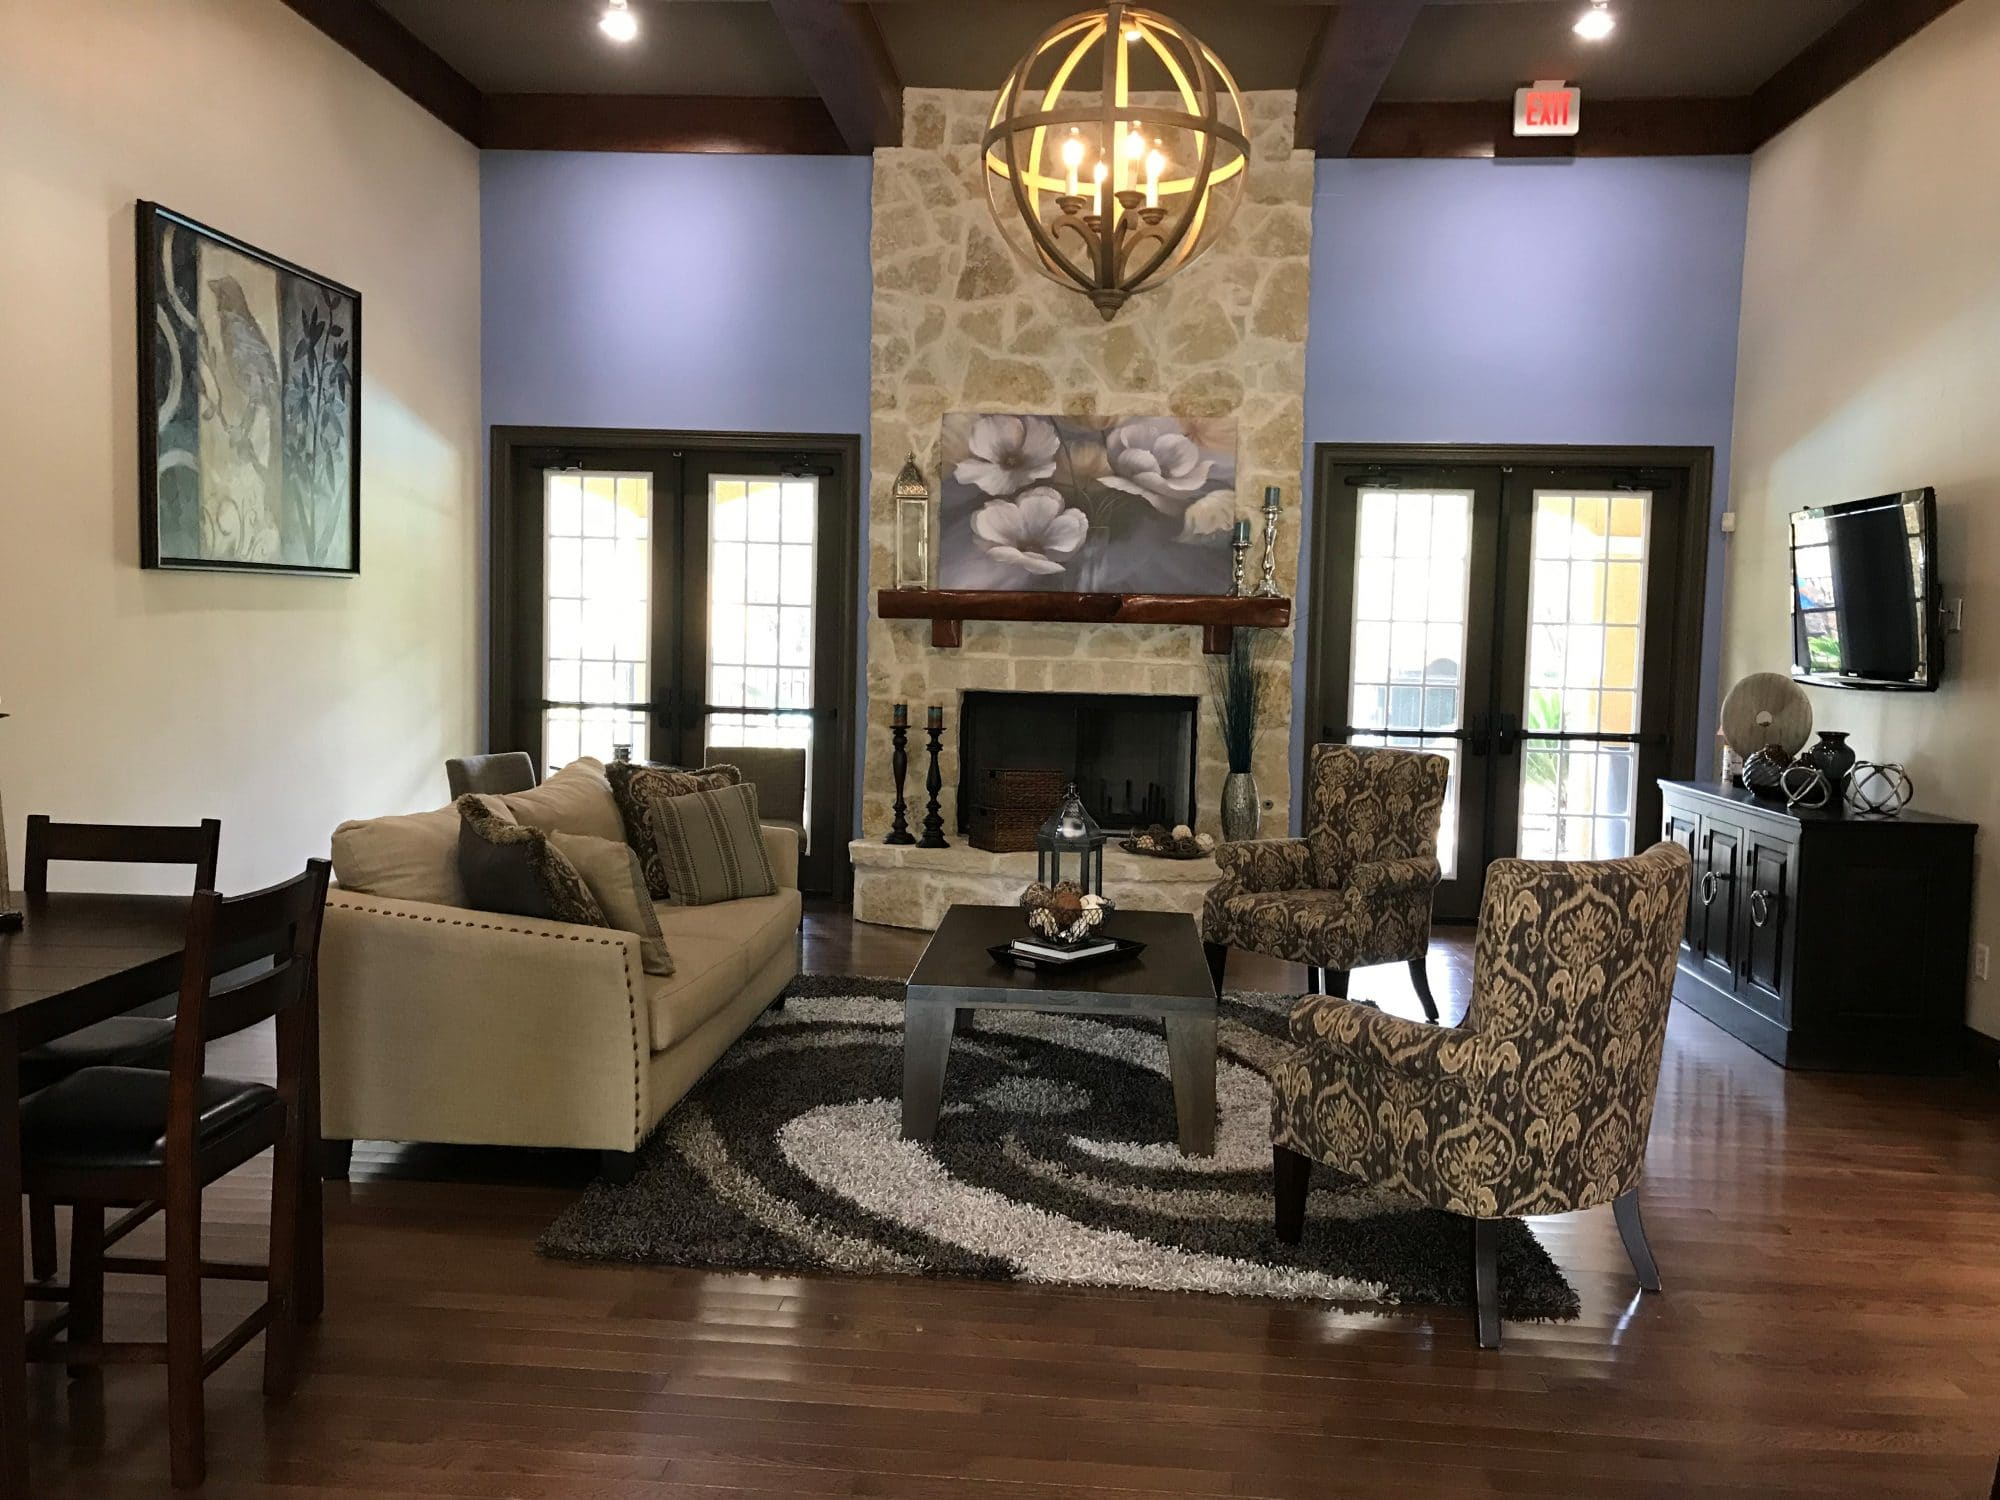 The park at braun station apartments in san antonio texas - One bedroom apartments san antonio ...